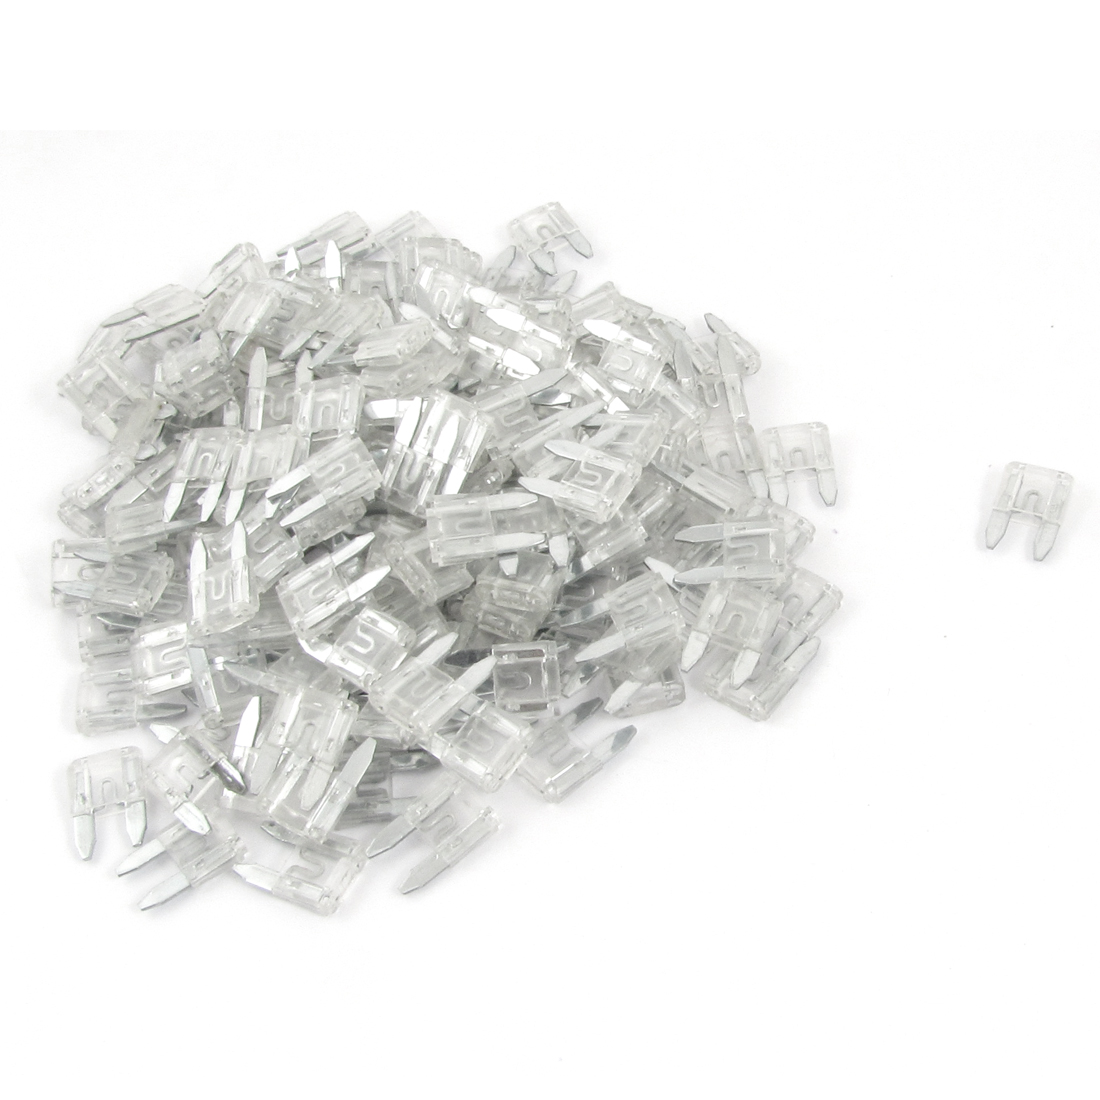 Automotive Car Mini Blade Fuse 25A Clear Auto Fuses 200 Pcs